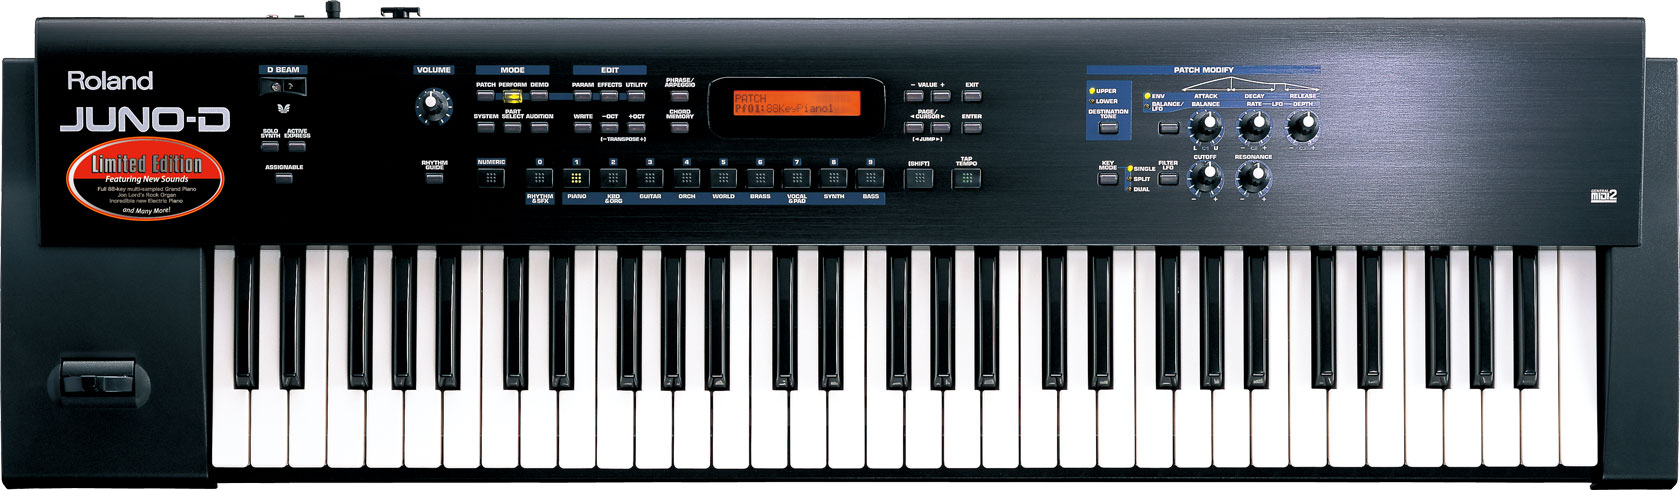 Roland - JUNO-D | Limited Edition Synthesizer